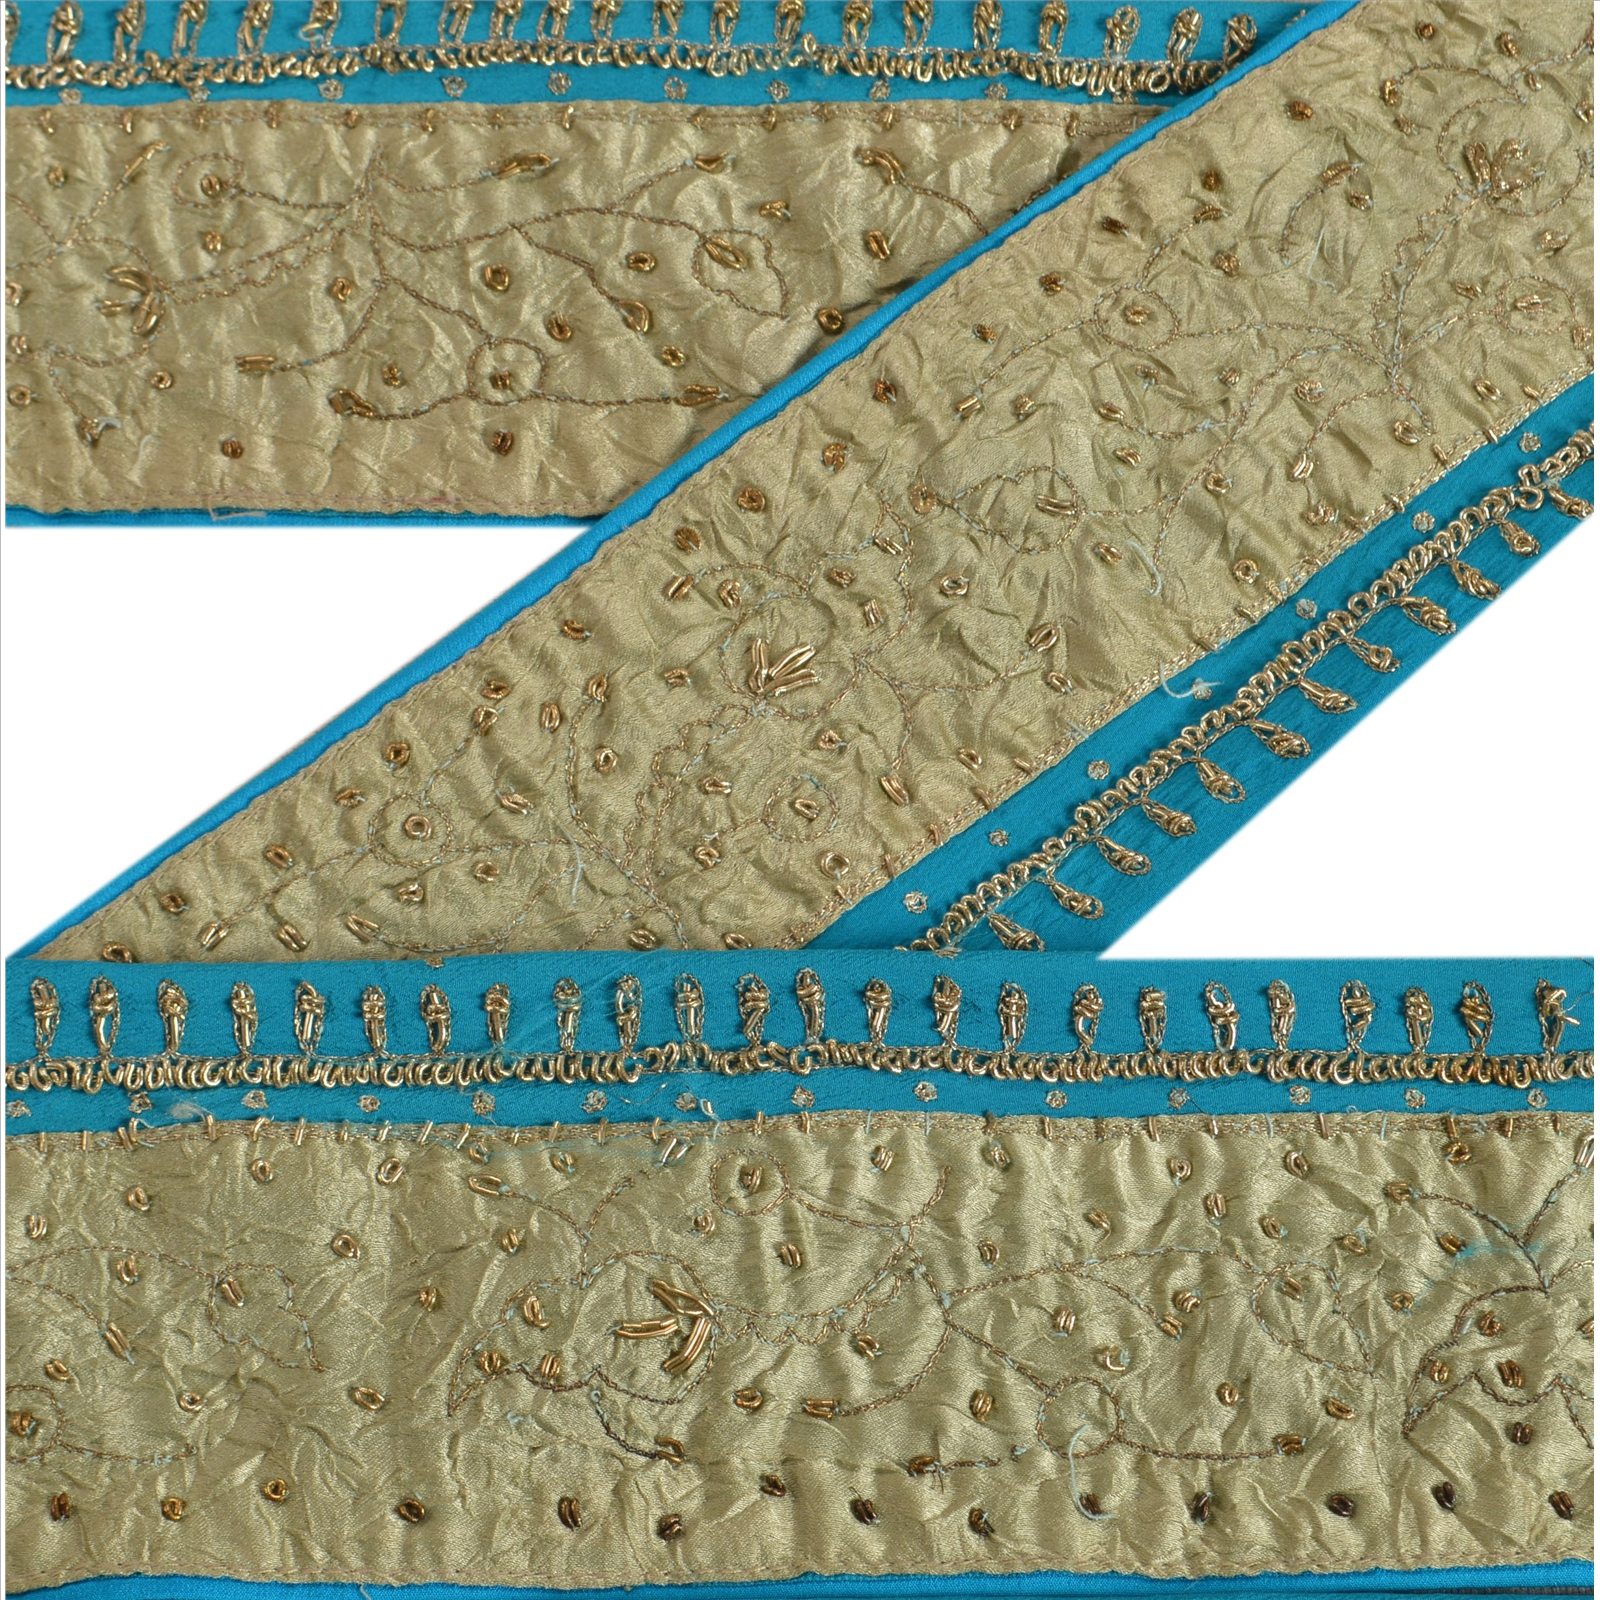 Trims Vintage Sari Border Antique Hand Embroidered Trim Sewing Blue Patch Lace